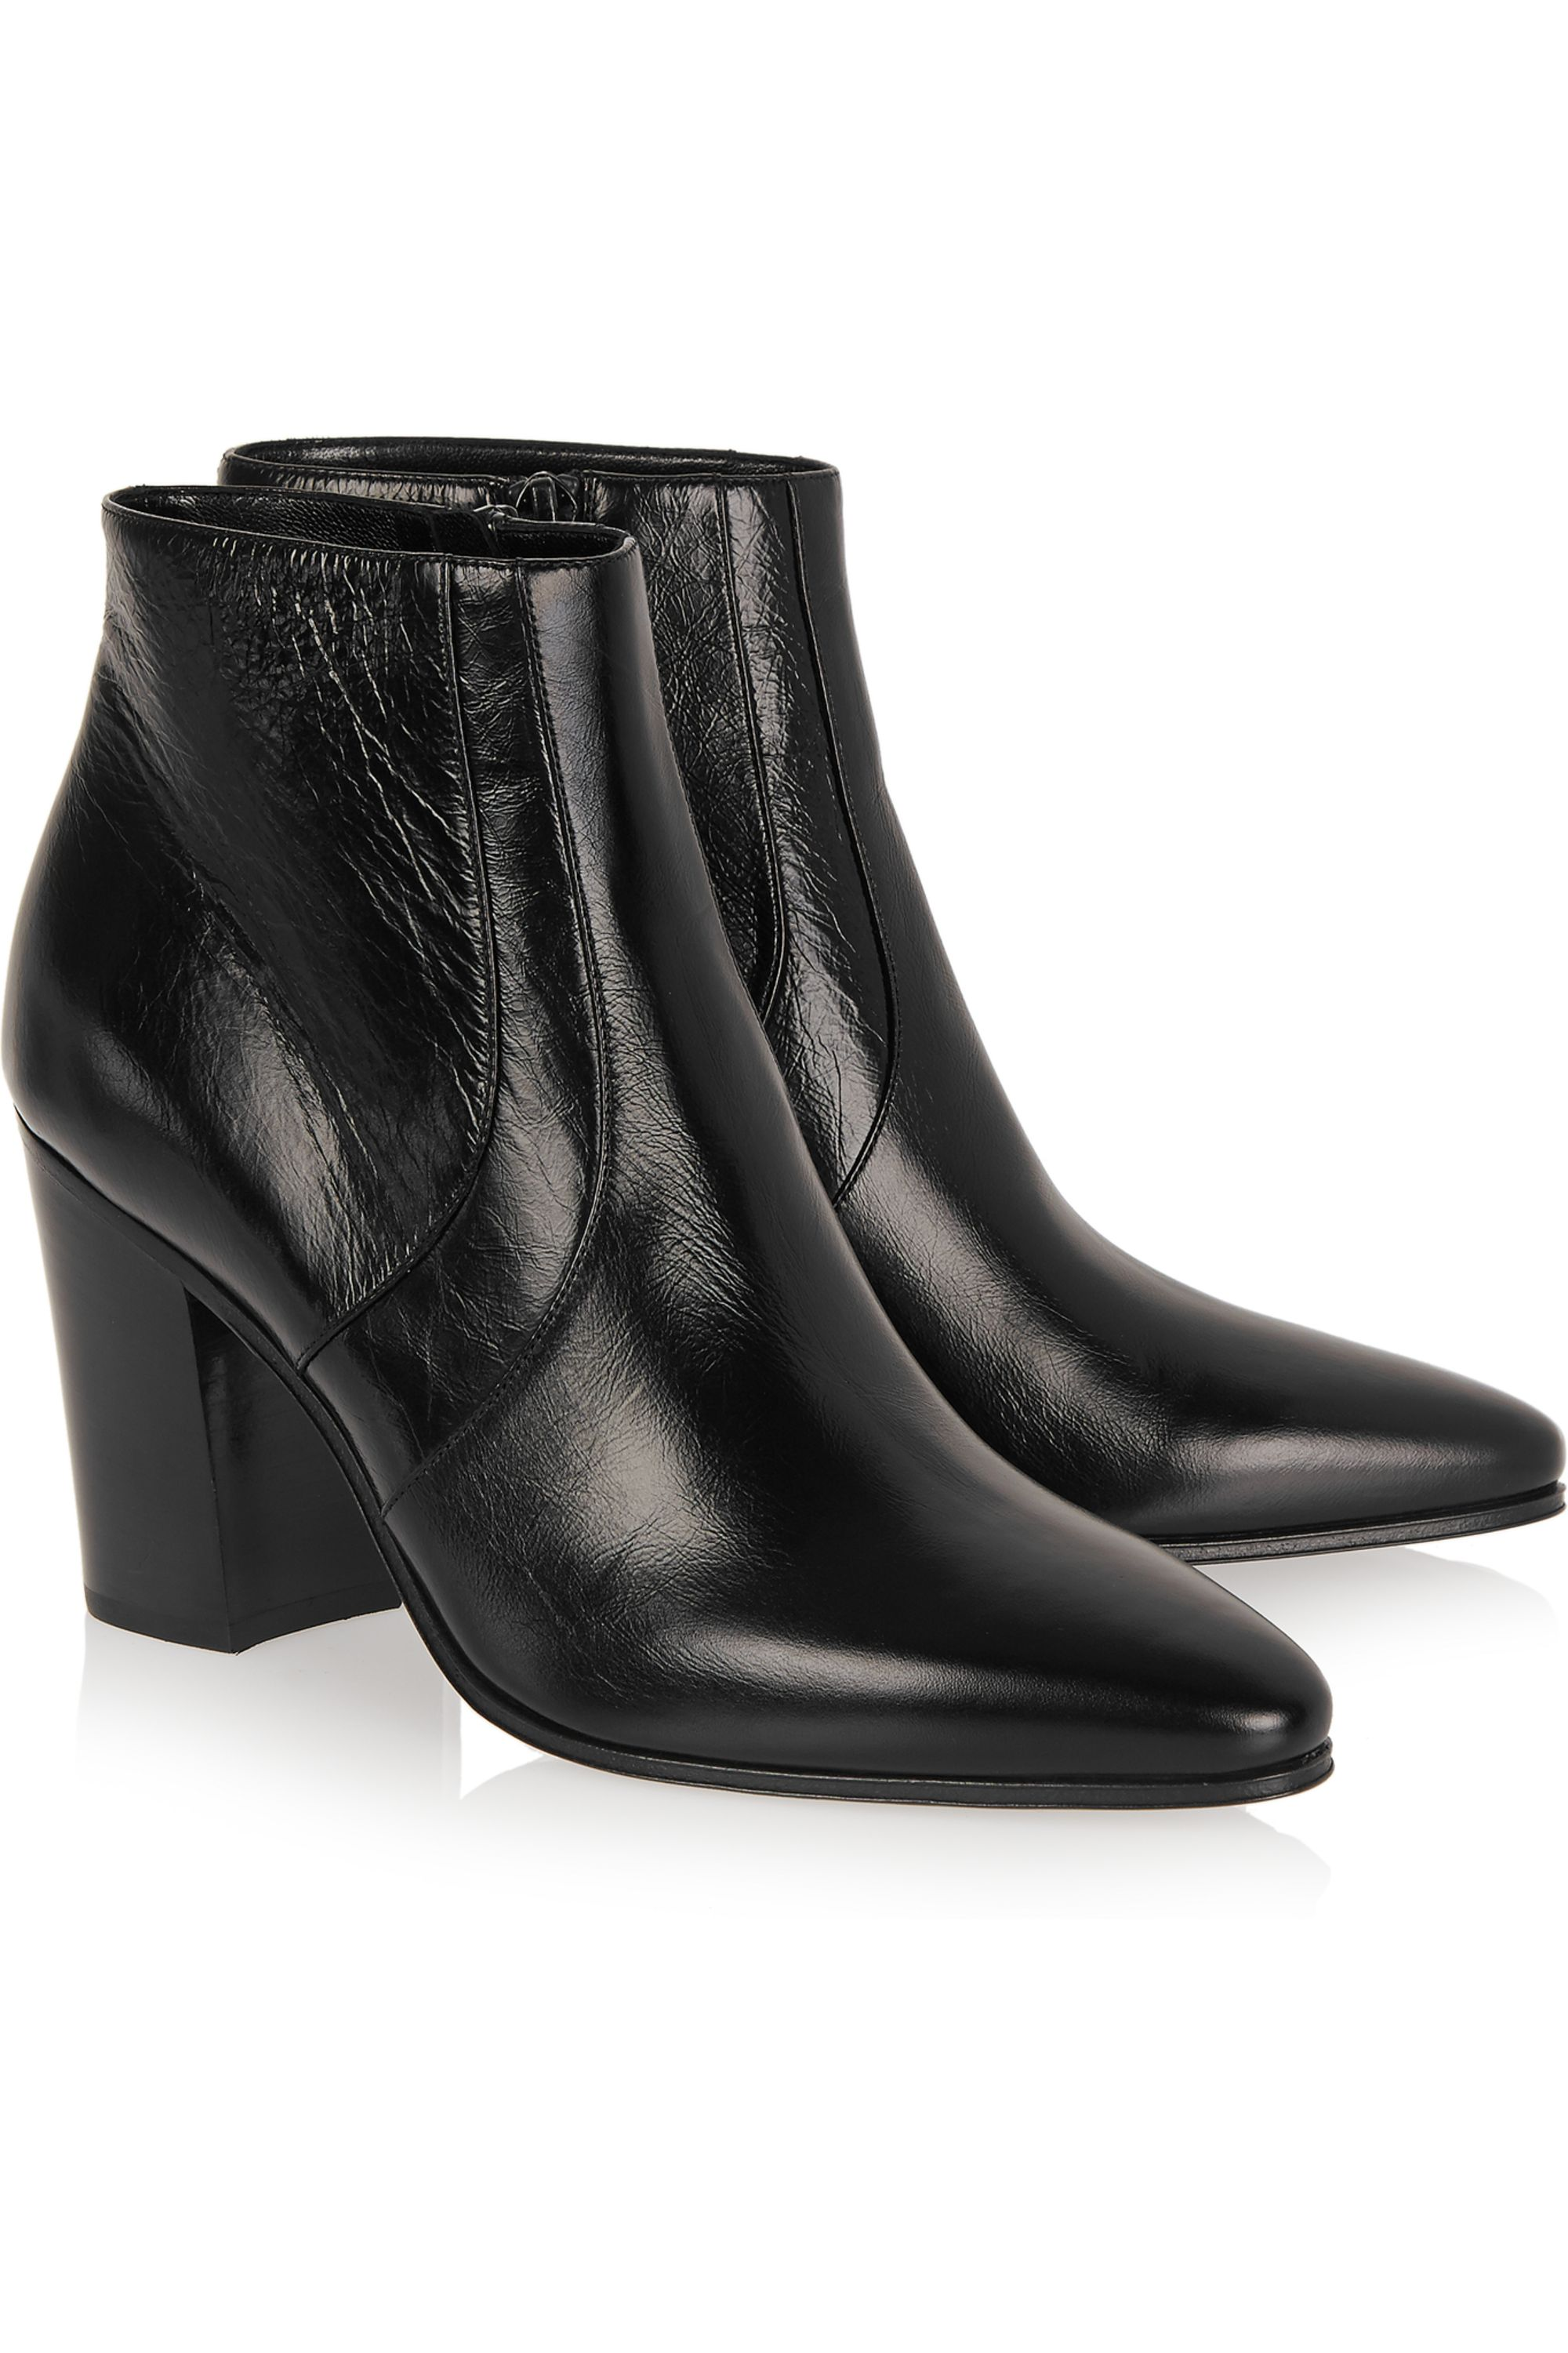 SAINT LAURENT Textured-leather ankle boots